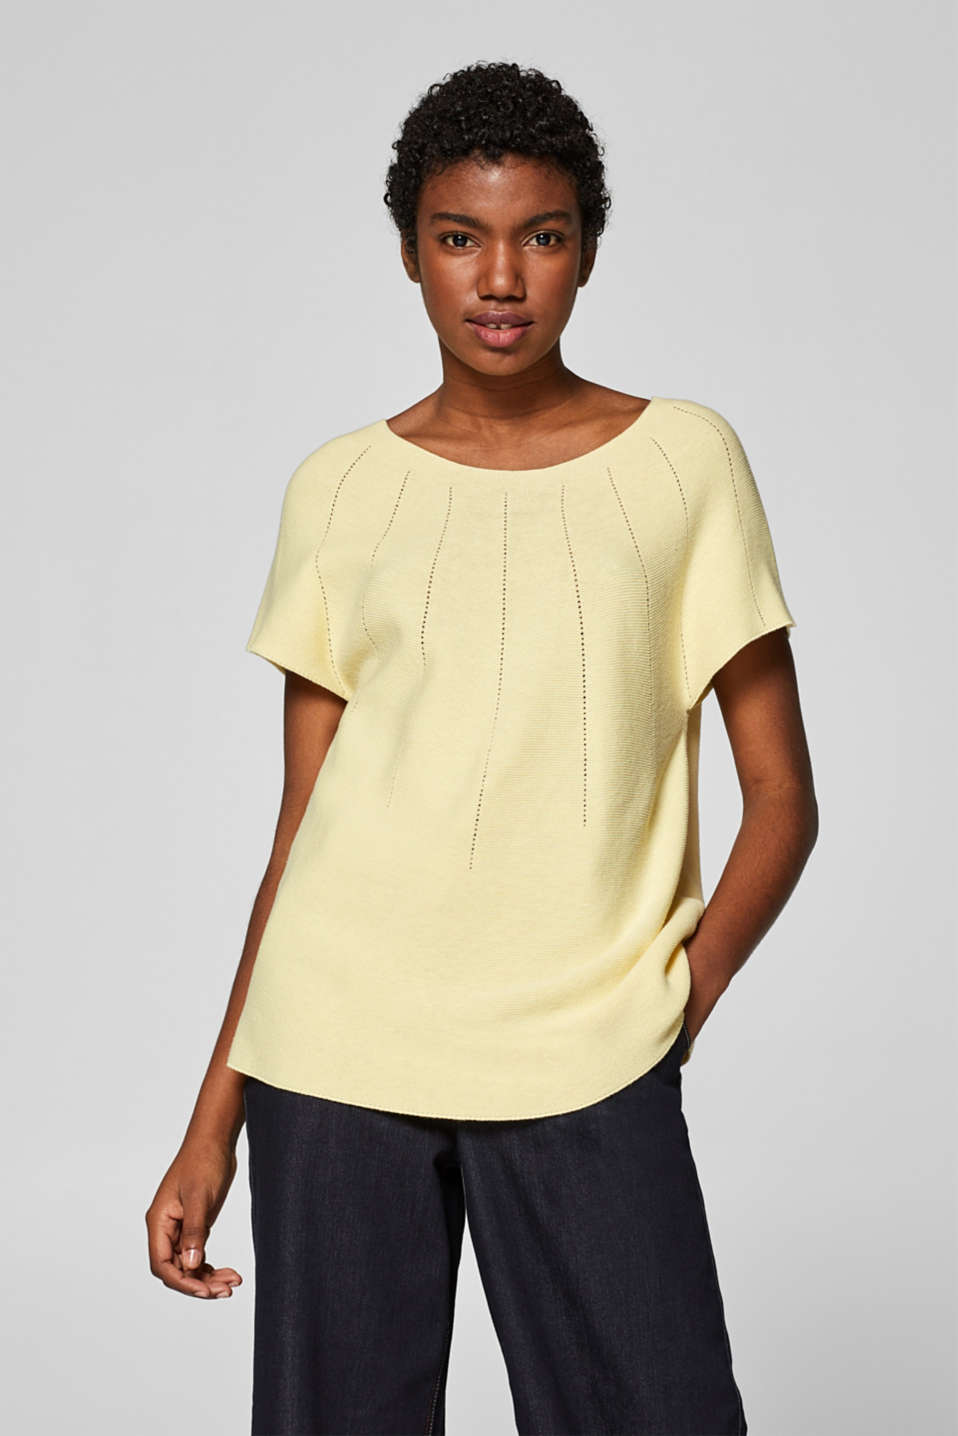 Esprit - Feminine jumper with open-work patterned details